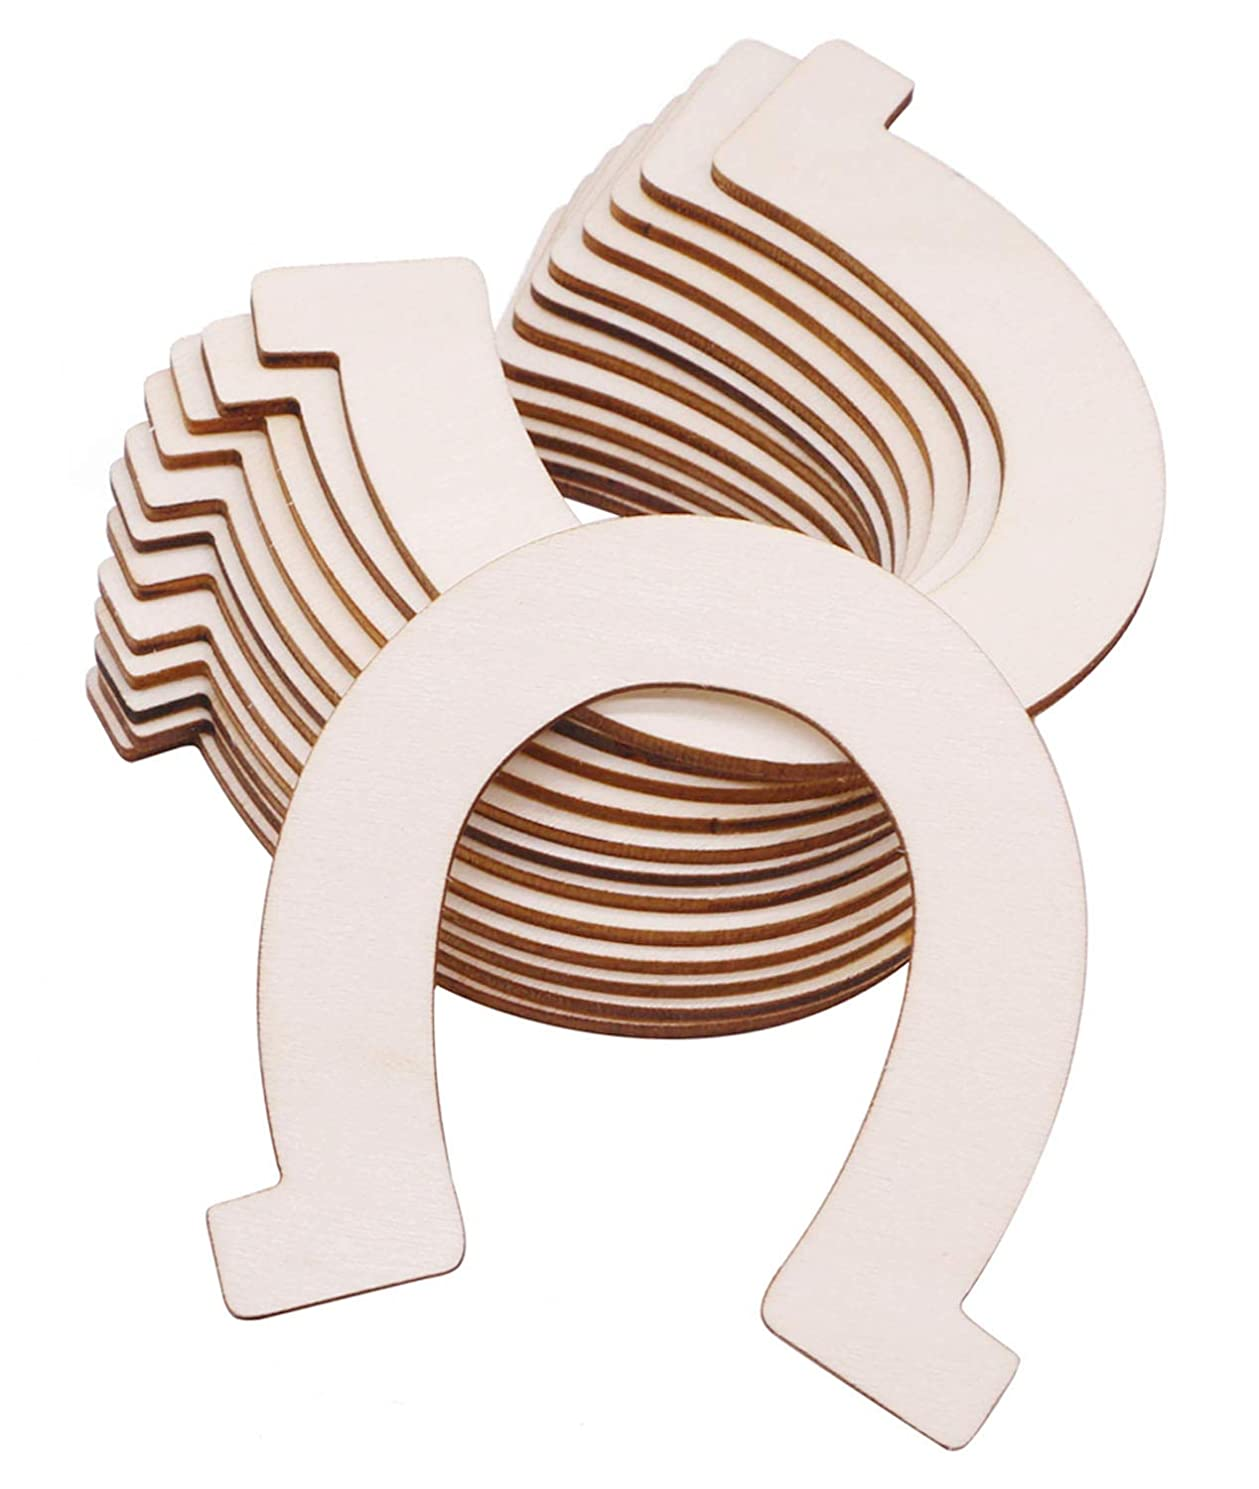 VERNUOS 24 Pcs Unfinished Wood Horseshoe Cutouts for DIY Craft, Wedding, Party and Birthday